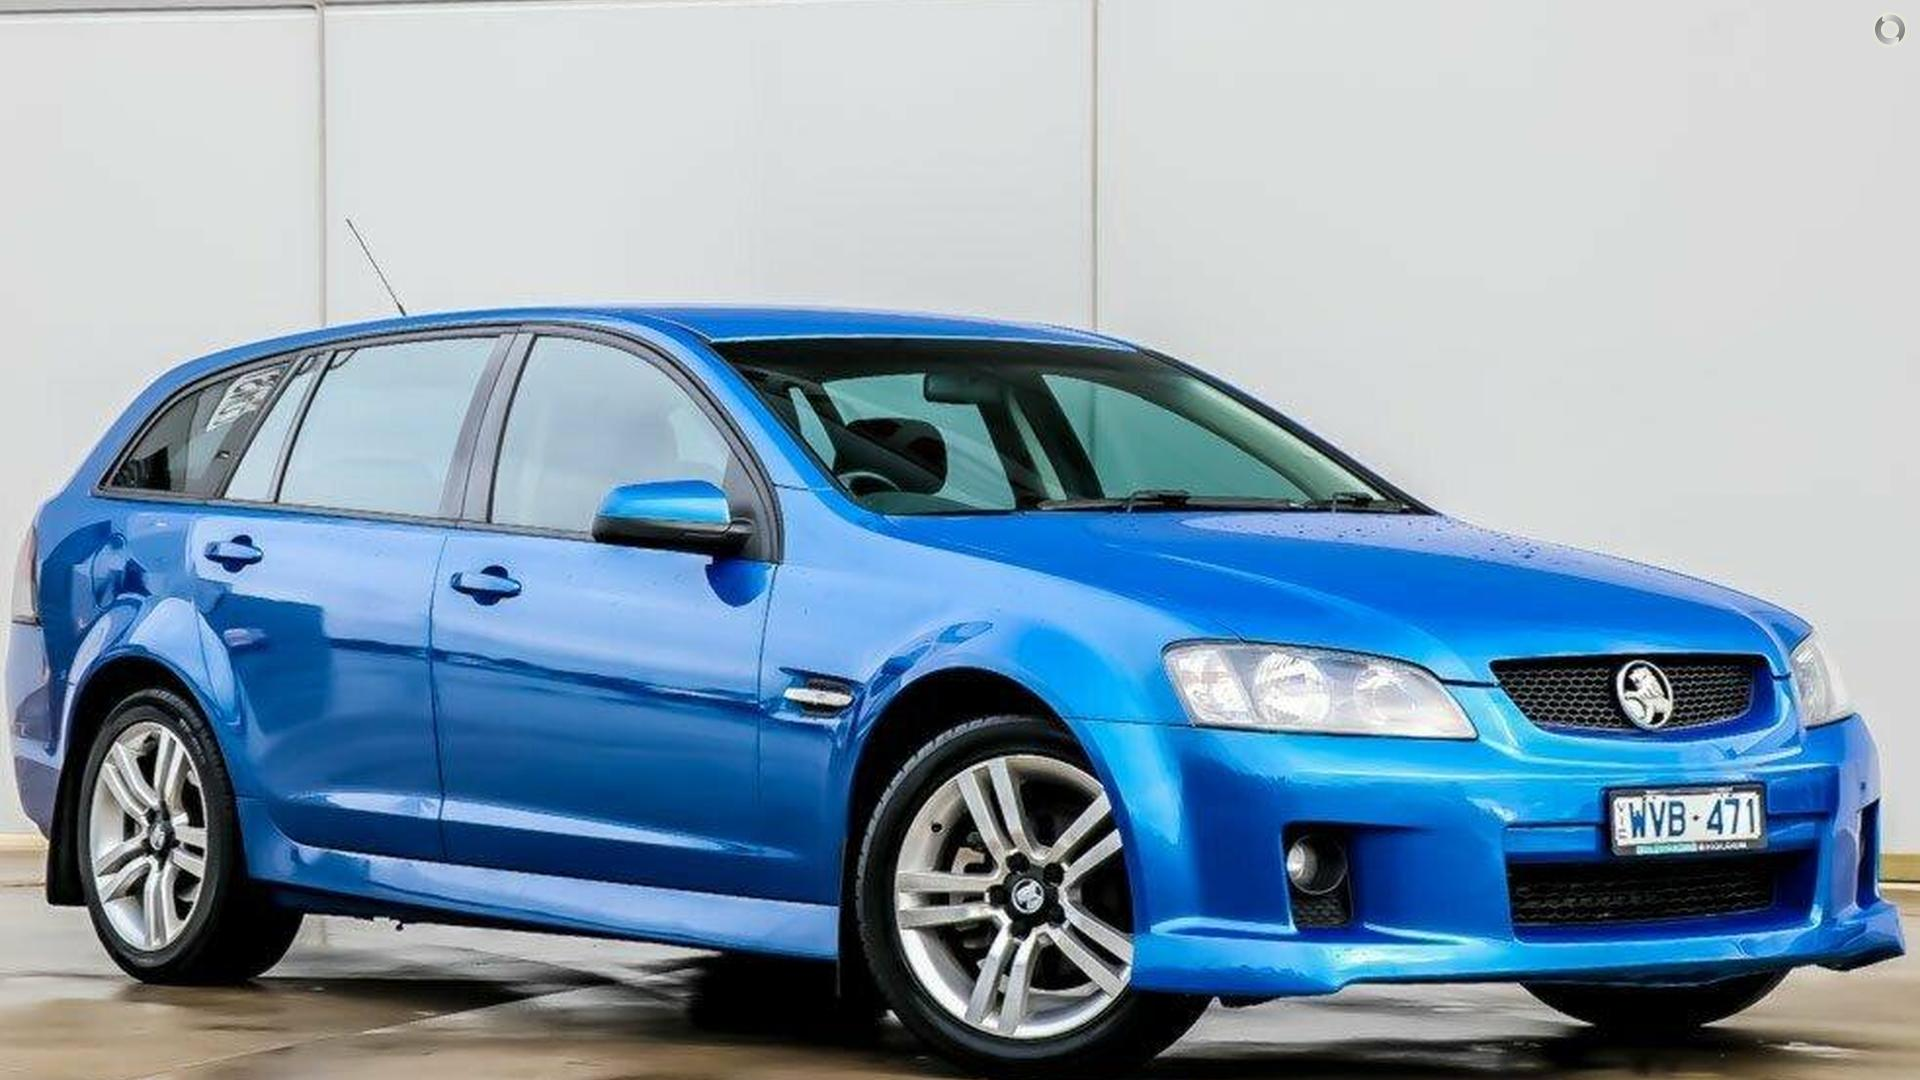 2009 Holden Commodore SV6 VE